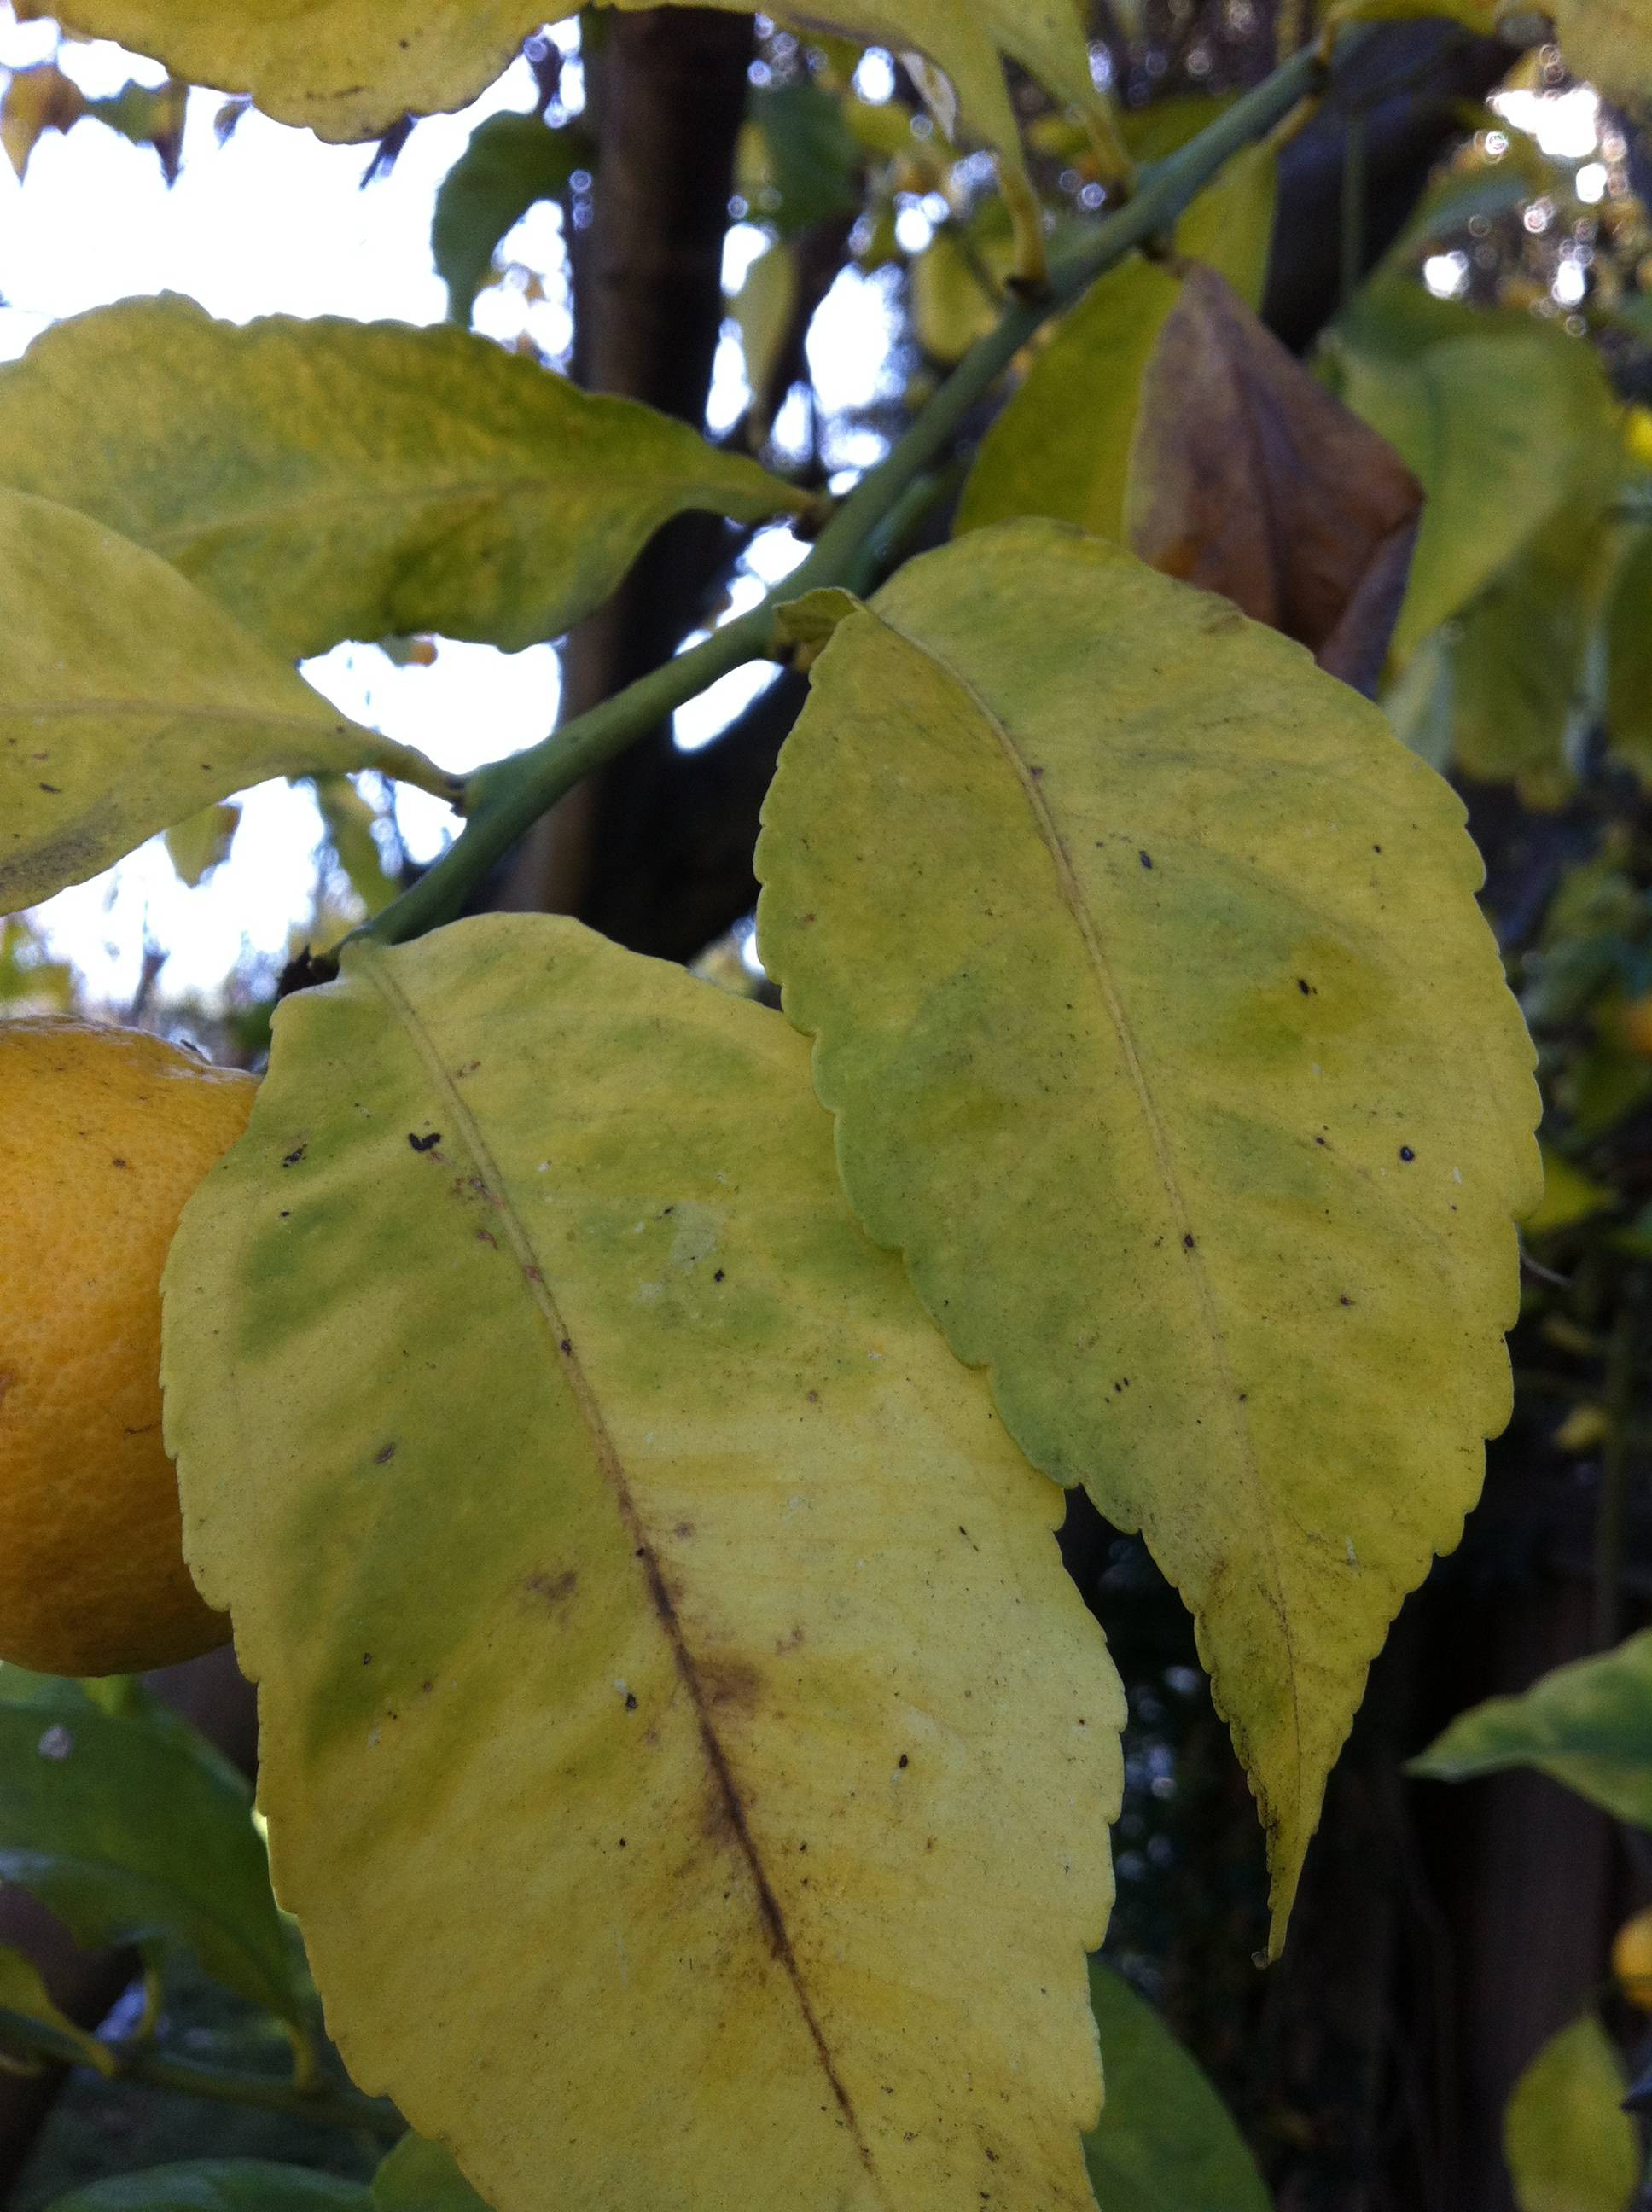 Diagnosis How Should A Lemon Tree With Yellowing Leaves